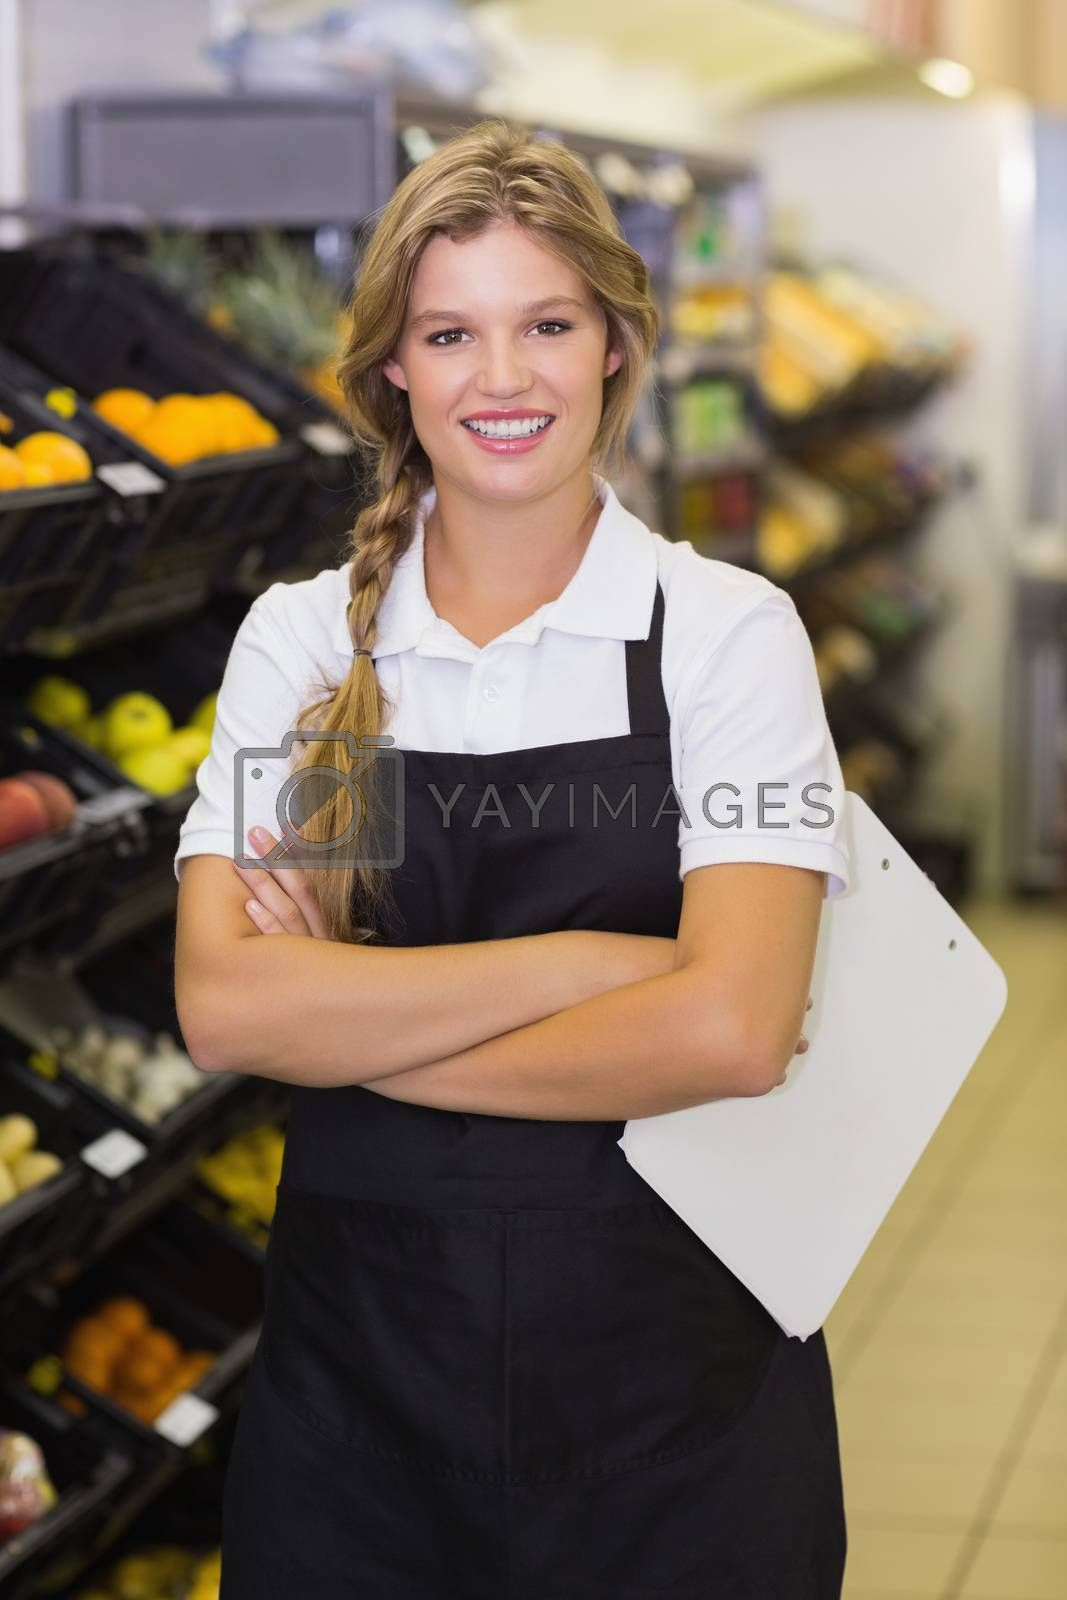 Royalty free image of Portrait of a smiling staff woman having a clipboard on her hands  by Wavebreakmedia